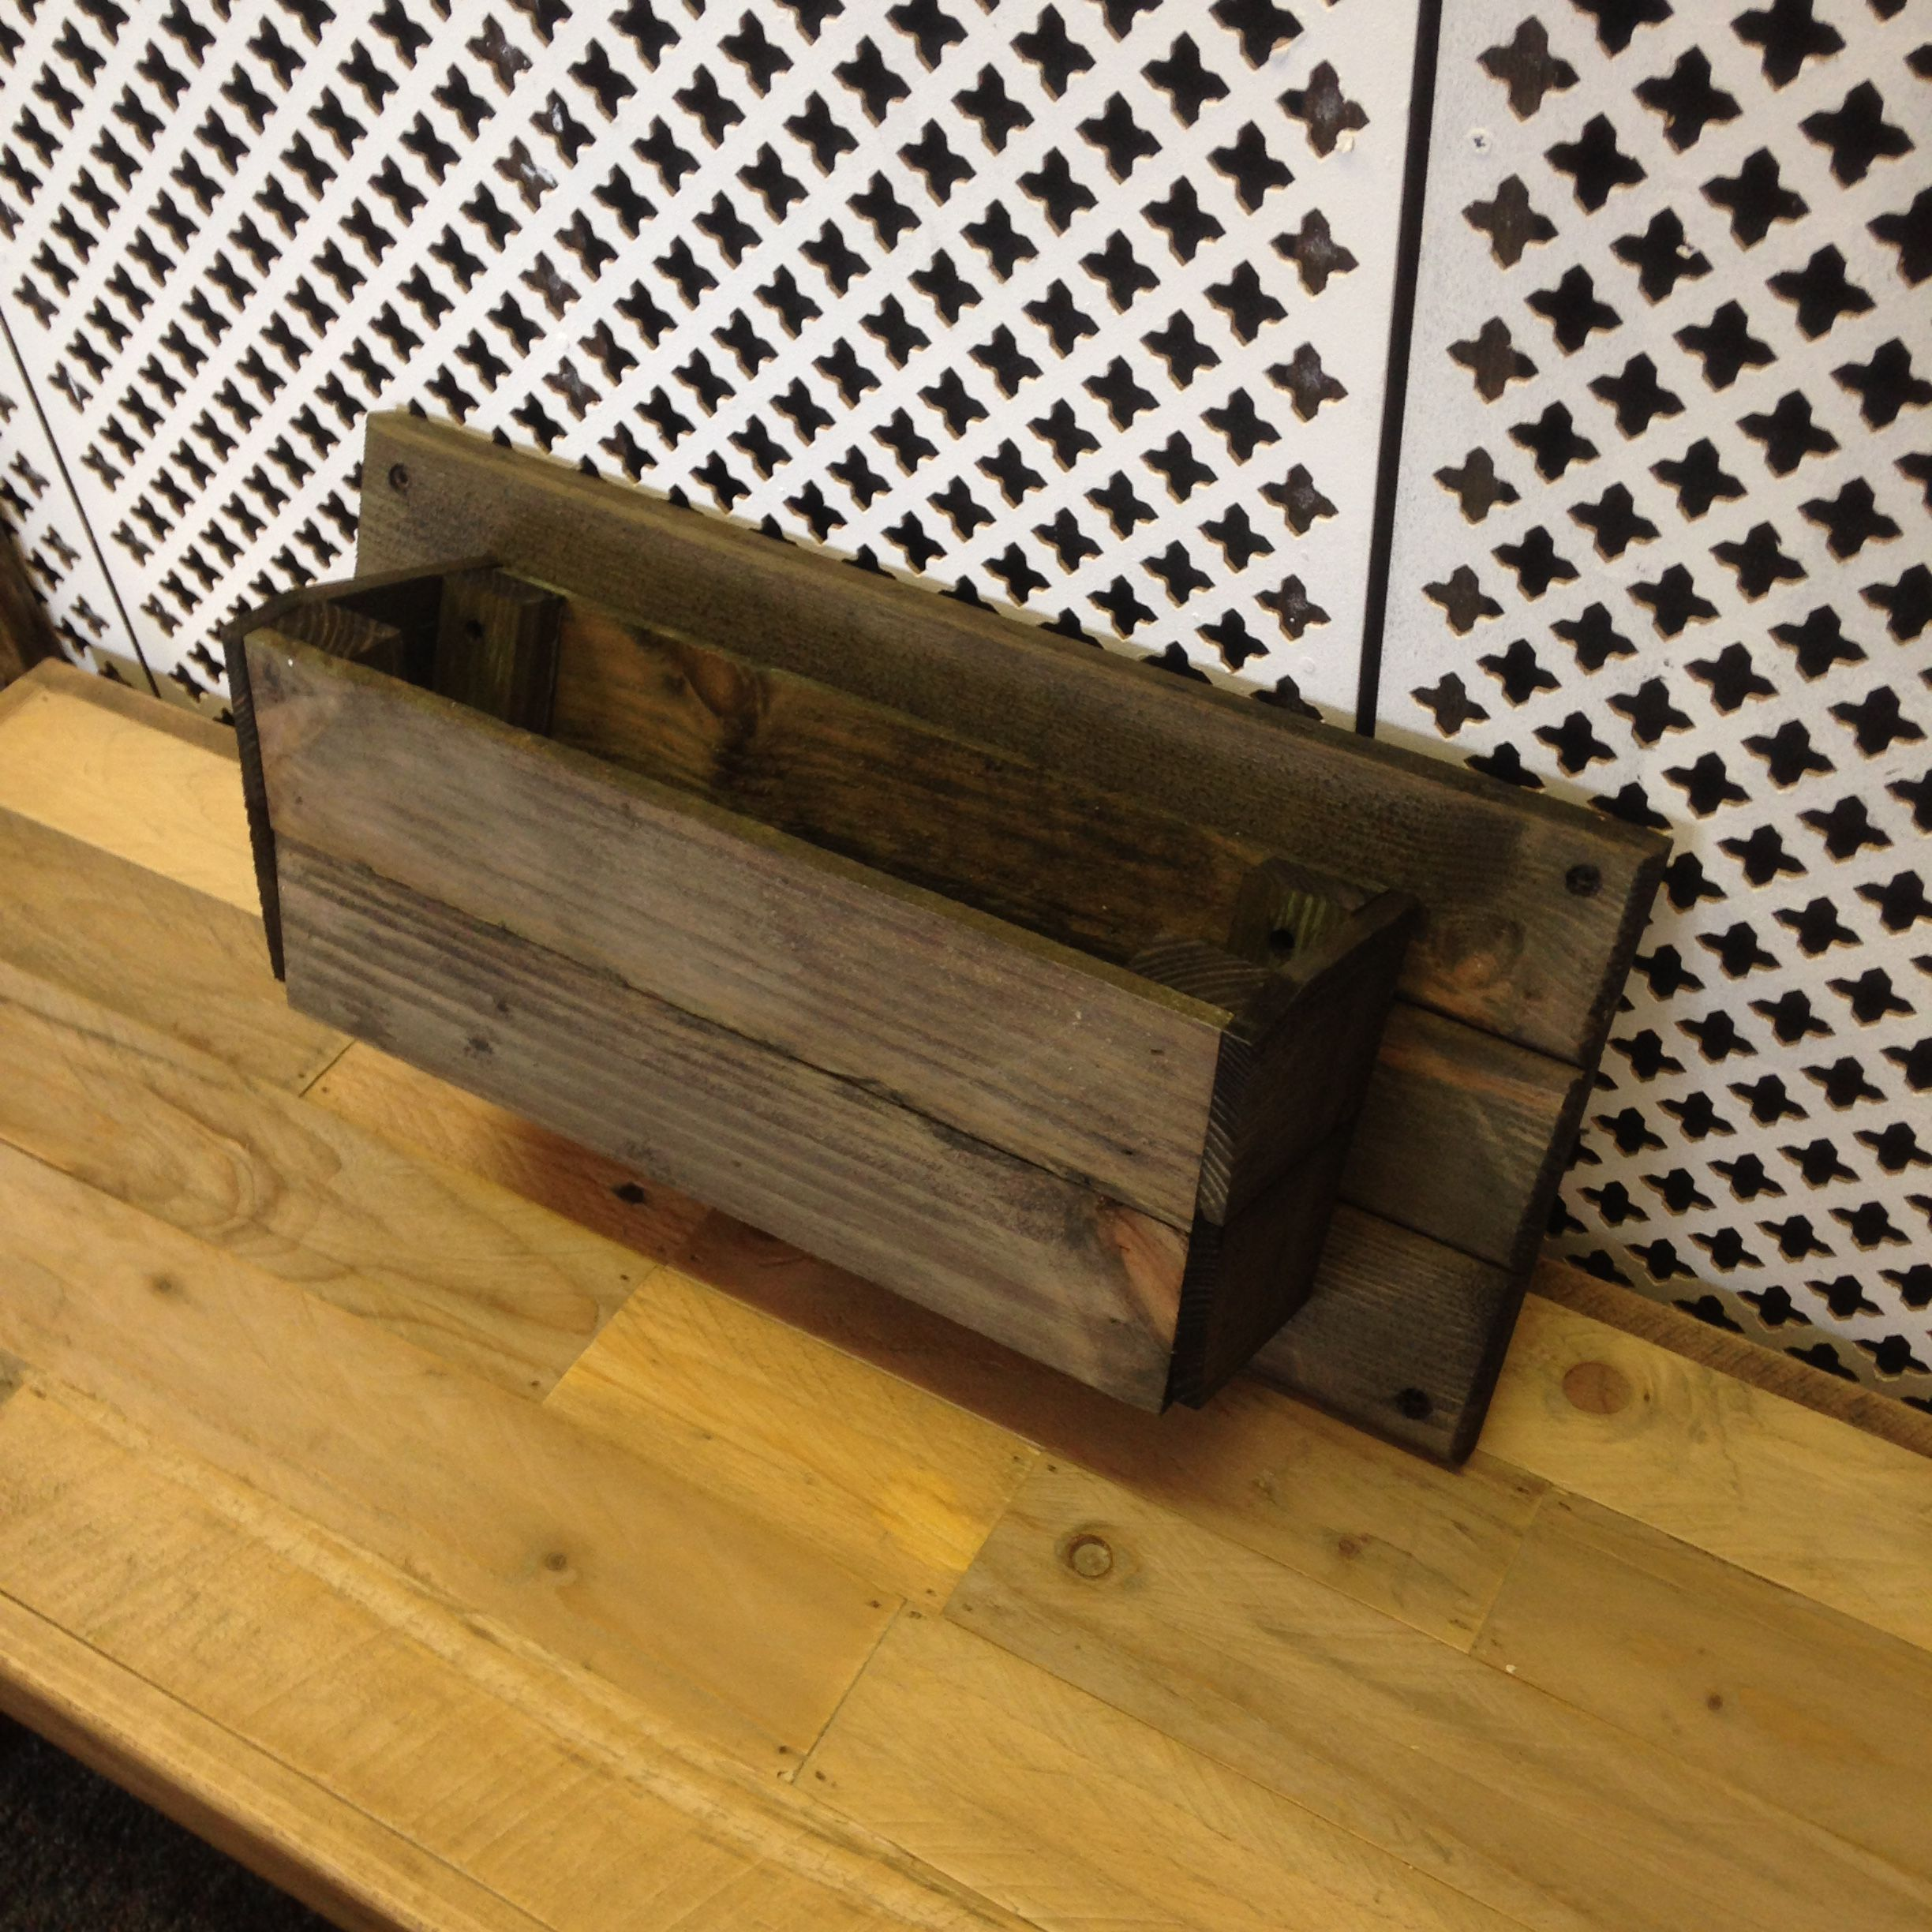 Handmade Rustic Wooden Pine Single Wall Planter Perfect for Herbs / Flowers, £19.99